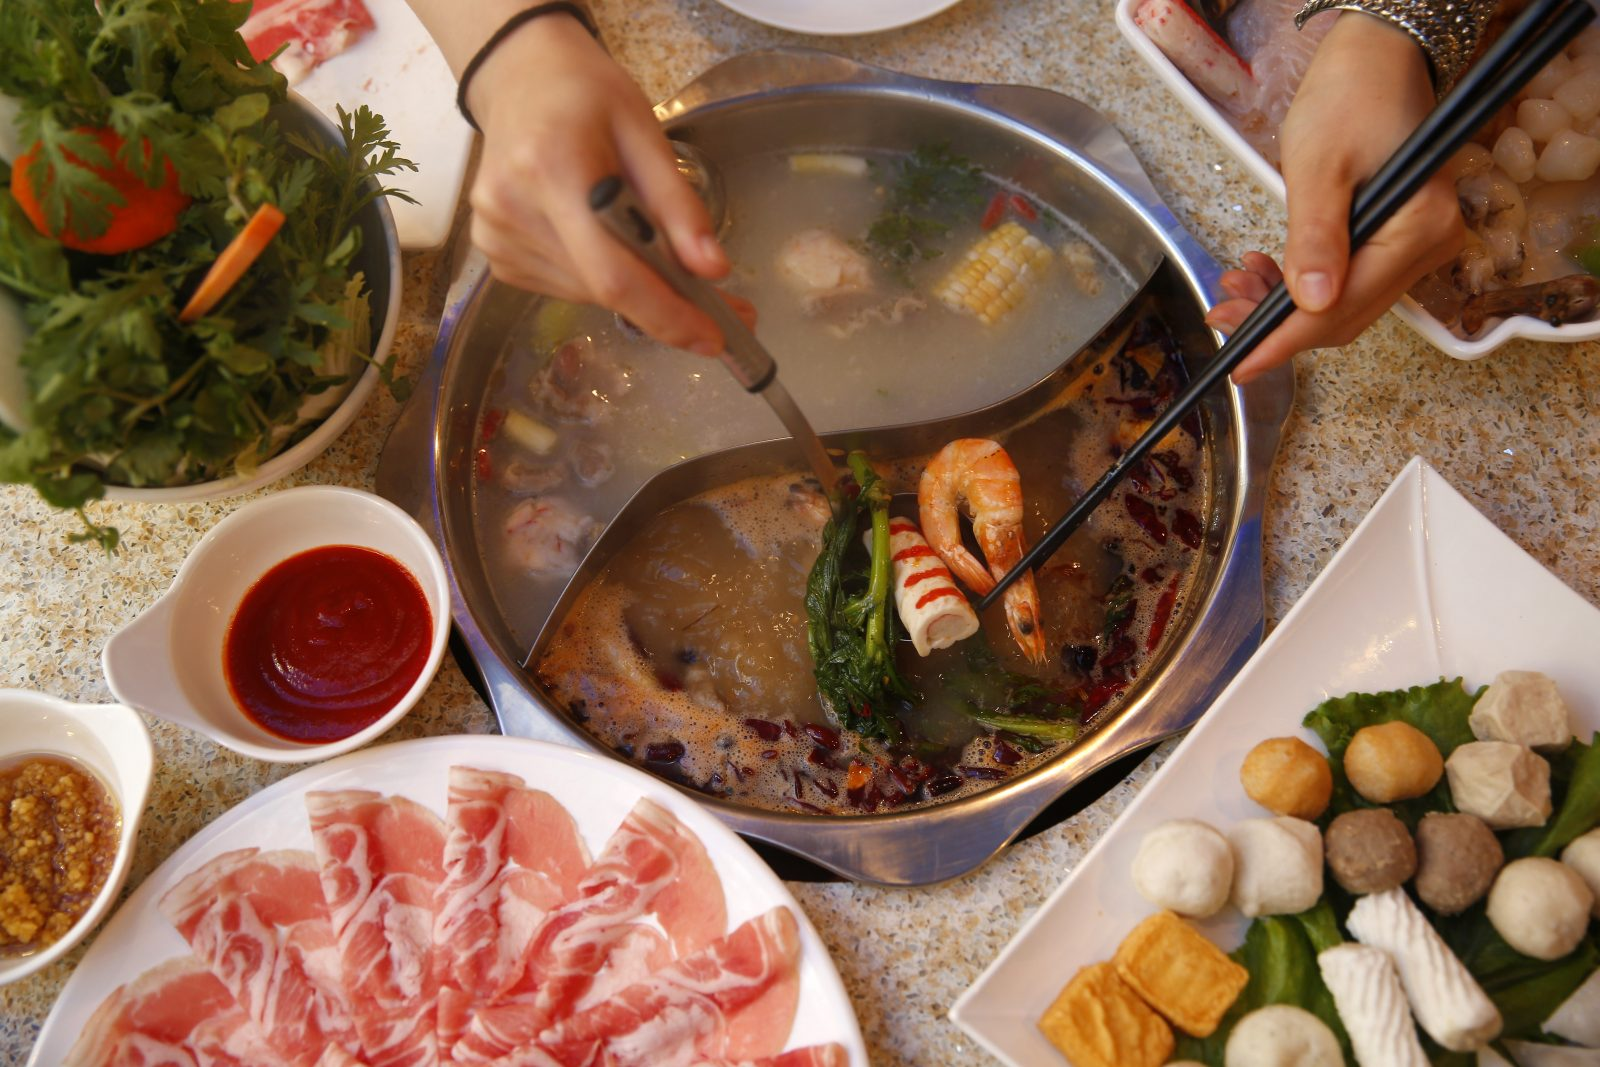 A hotpot features seafood, beef, lamb, meatballs and lots of vegetables at Little Lamb in Amherst. (Sharon Cantillon/Buffalo News)